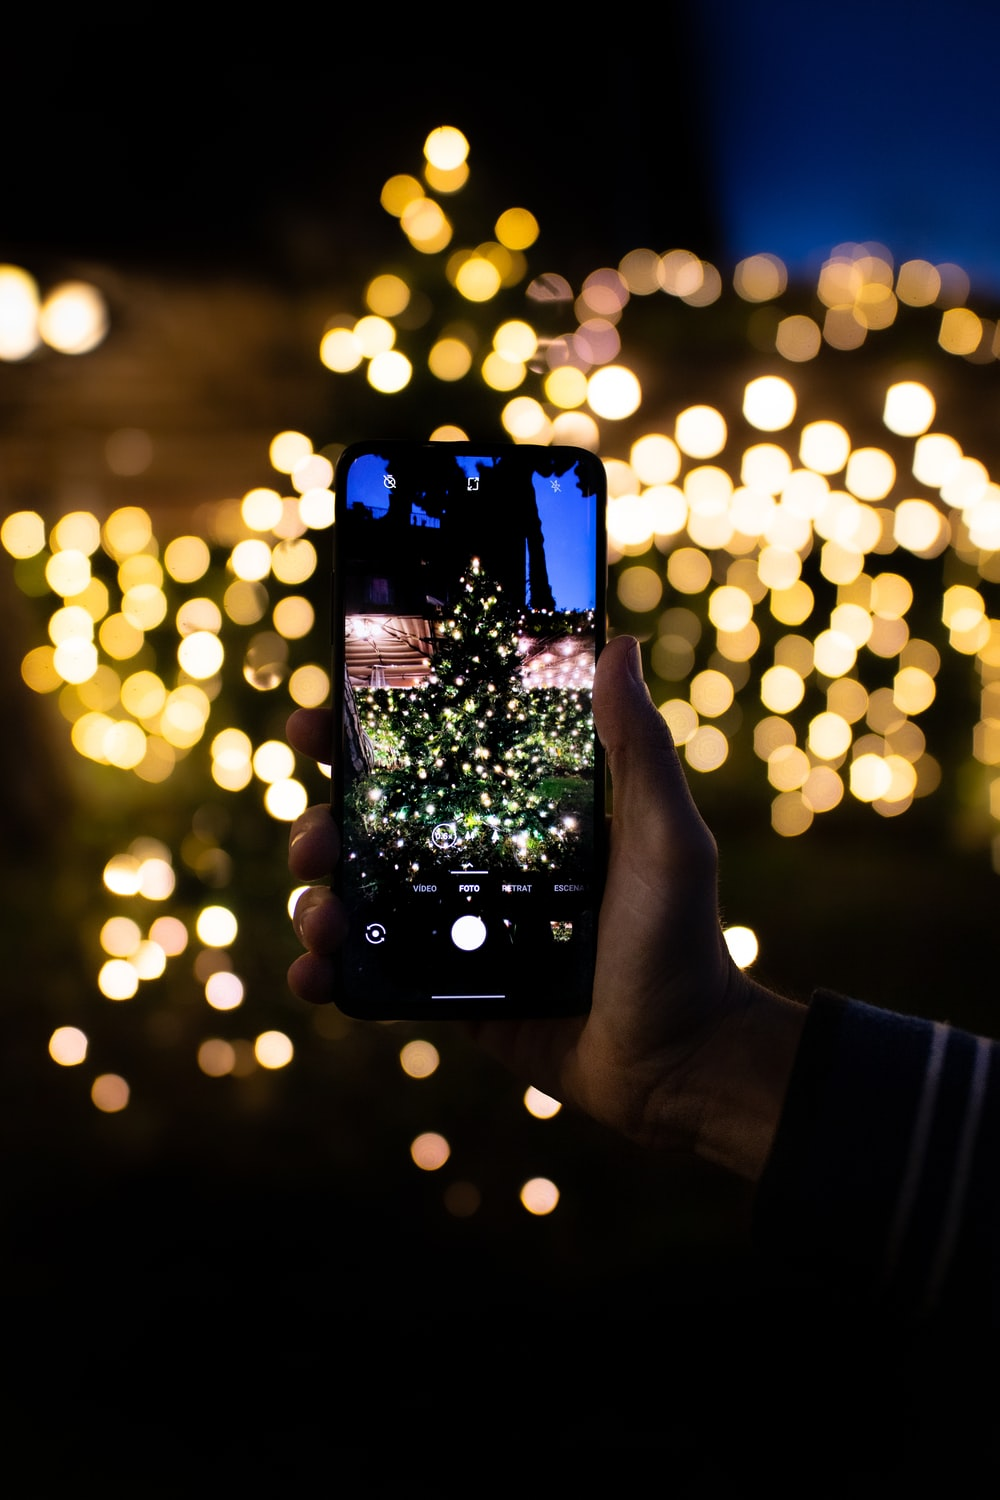 person holding black smartphone taking photo of green Christmas tree